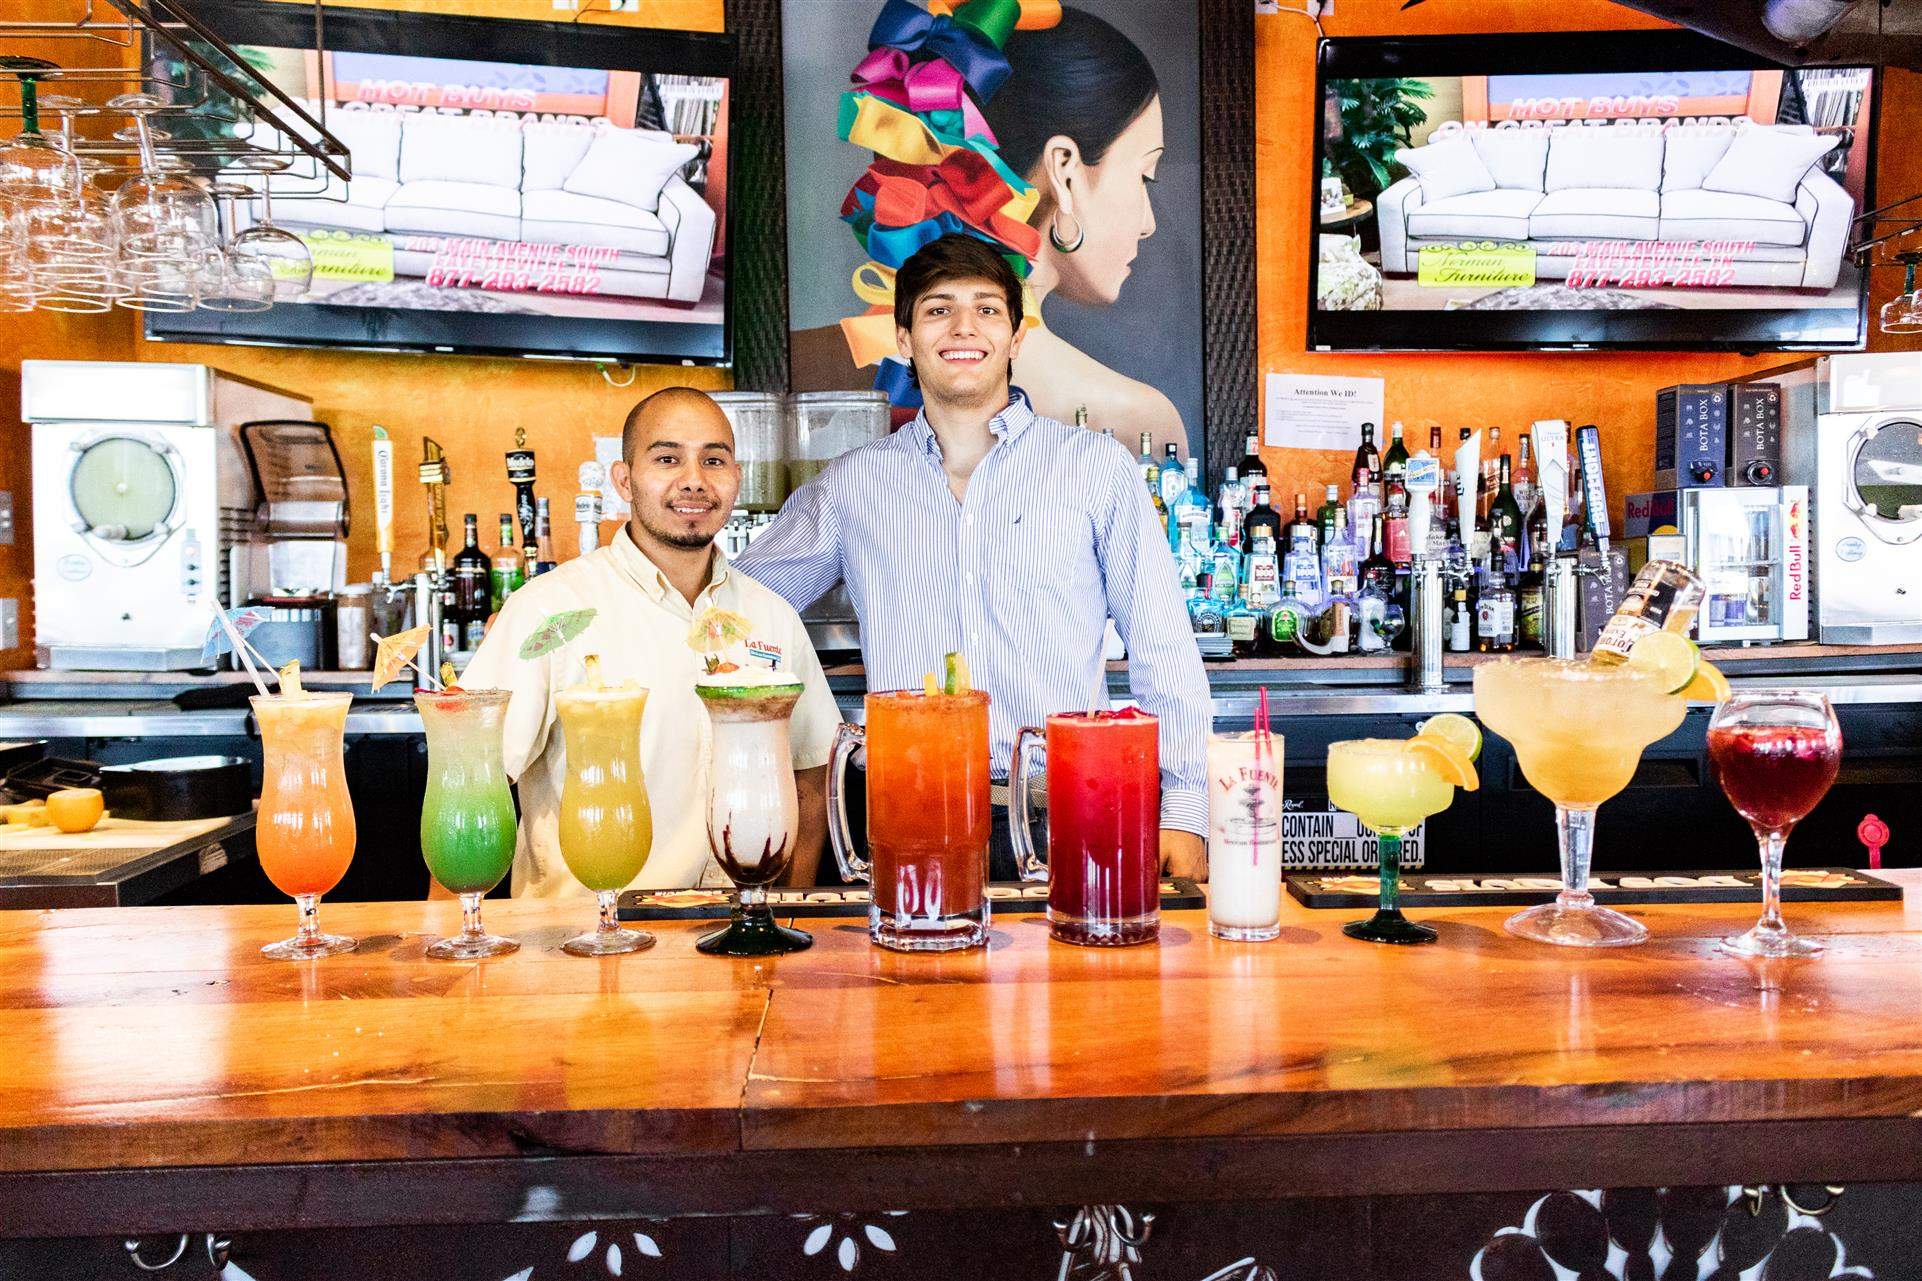 two bartenders smiling behind the bar showcasing all of the restaurants speciality cocktails